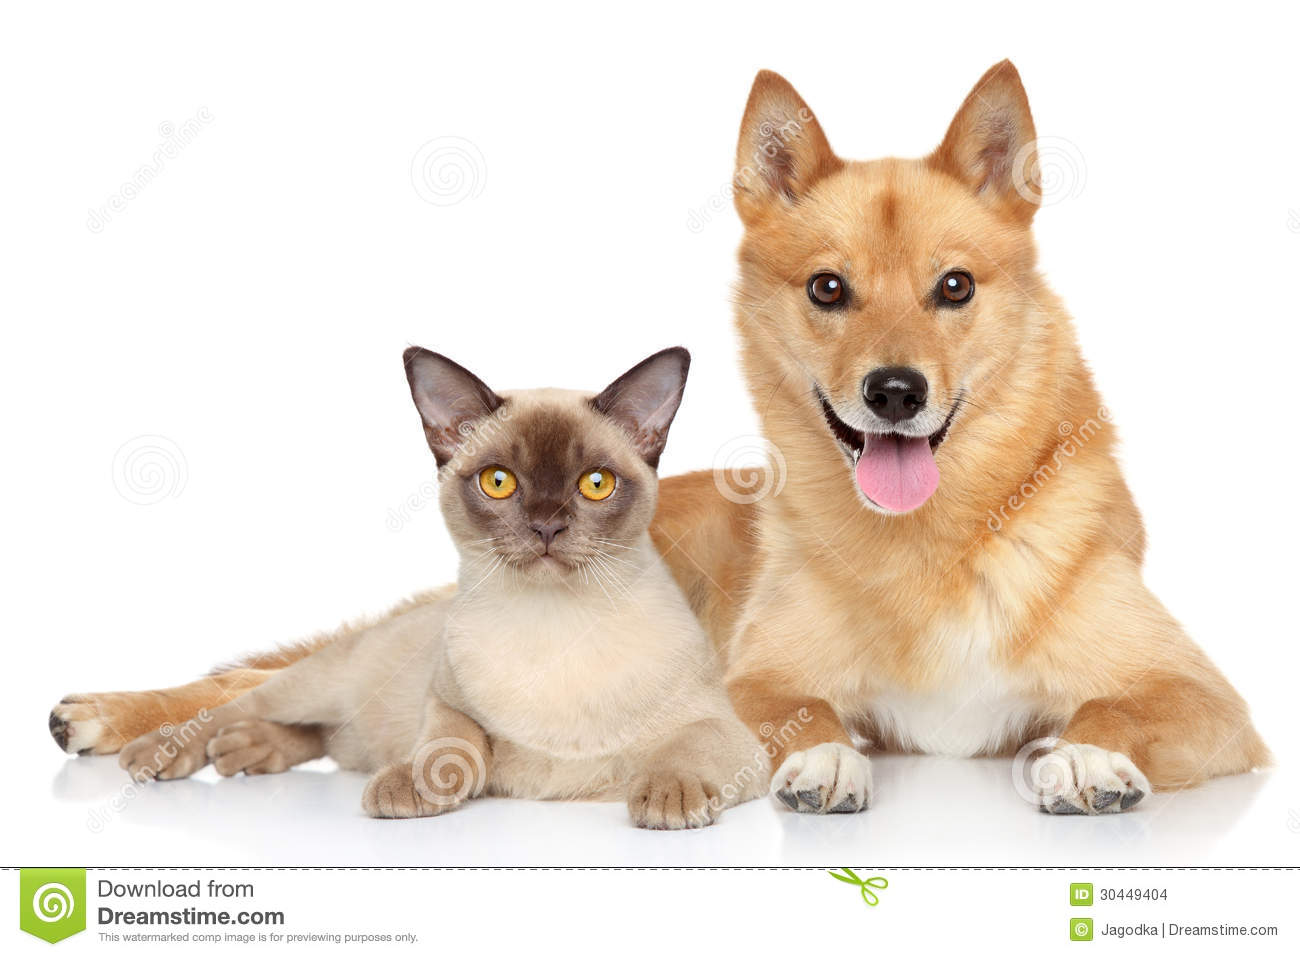 Happy Dog And Cat Together Stock Images - Image: 30449404 - photo#49